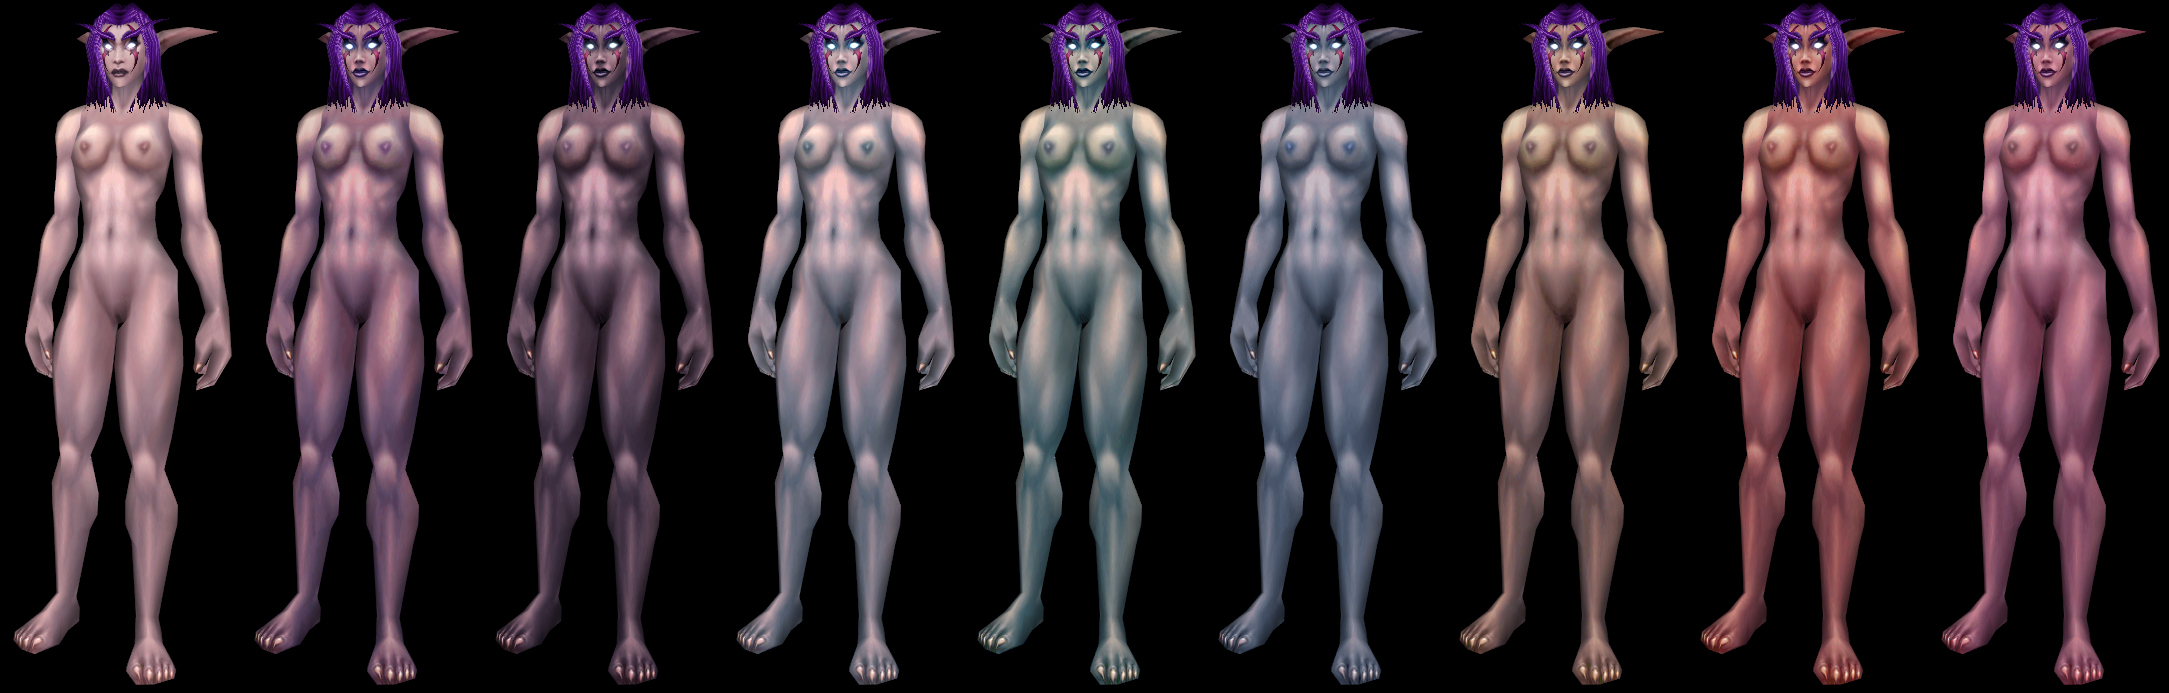 Nude sim skin Warcraft 3 xxx cuties